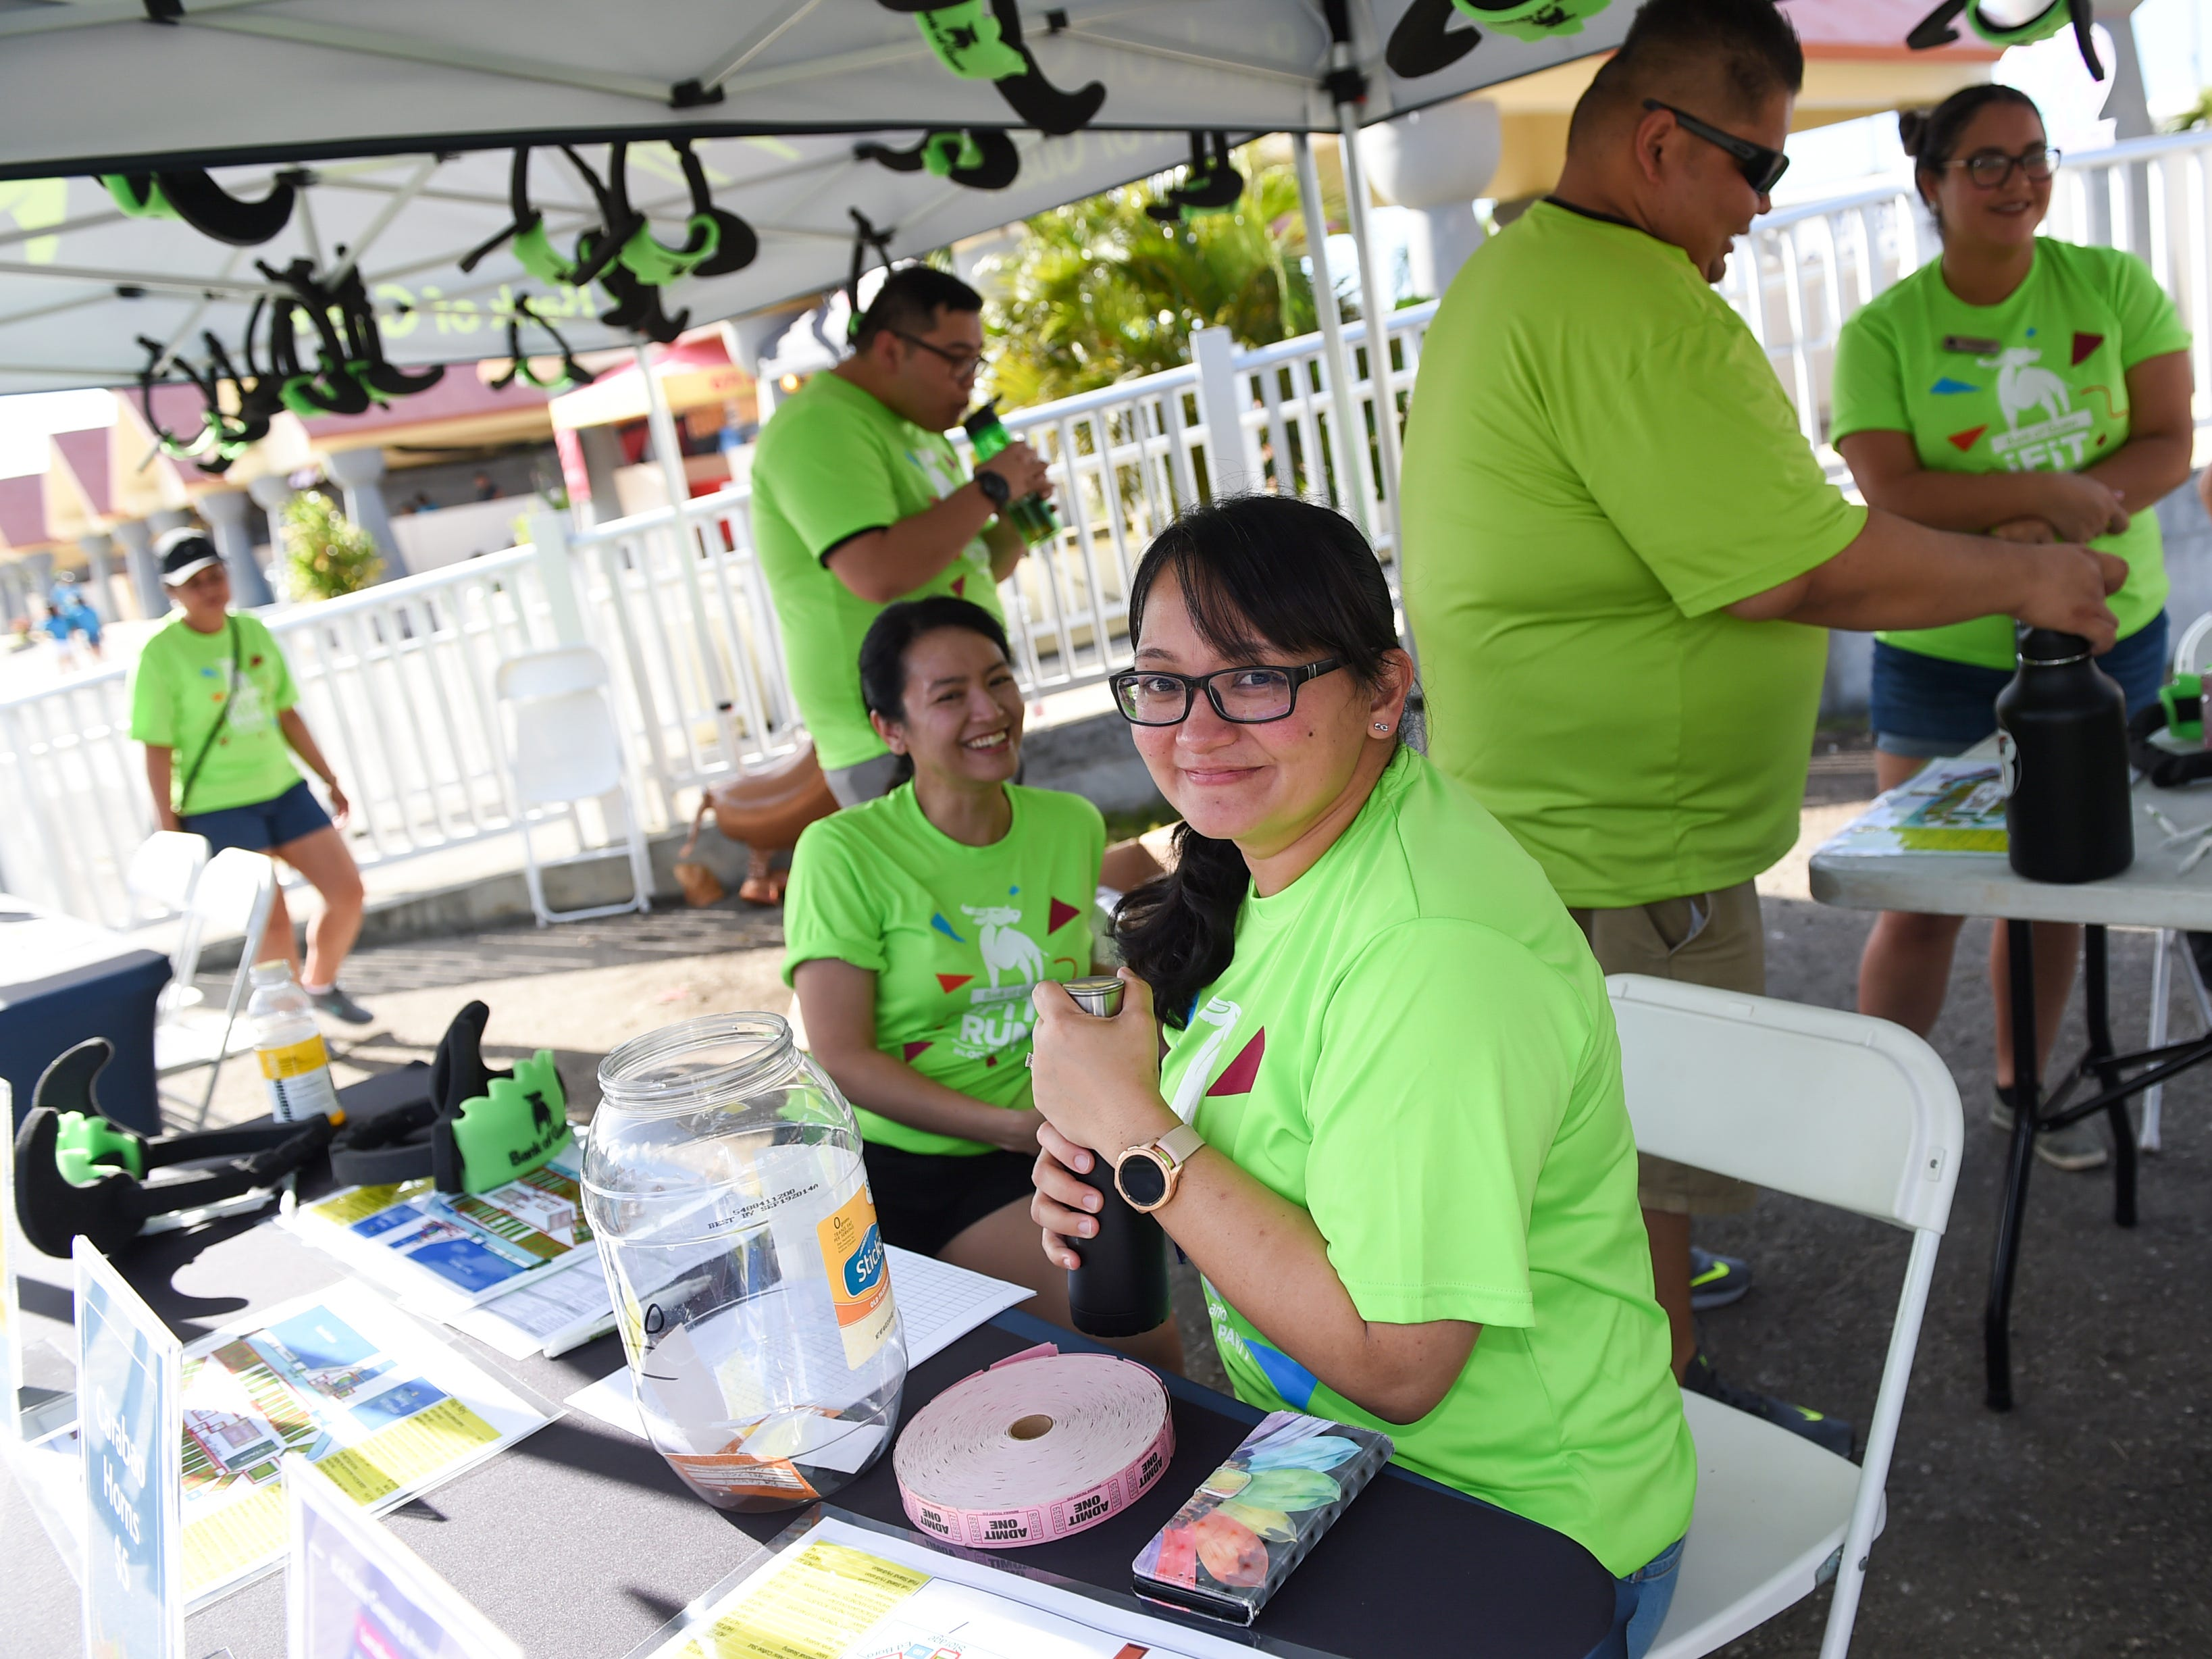 Bank of Guam employees at their ticket booth during the Bank of Guam Ifit Run and Block Party at Chamorro Village in Hagåtña, March 9, 2019.